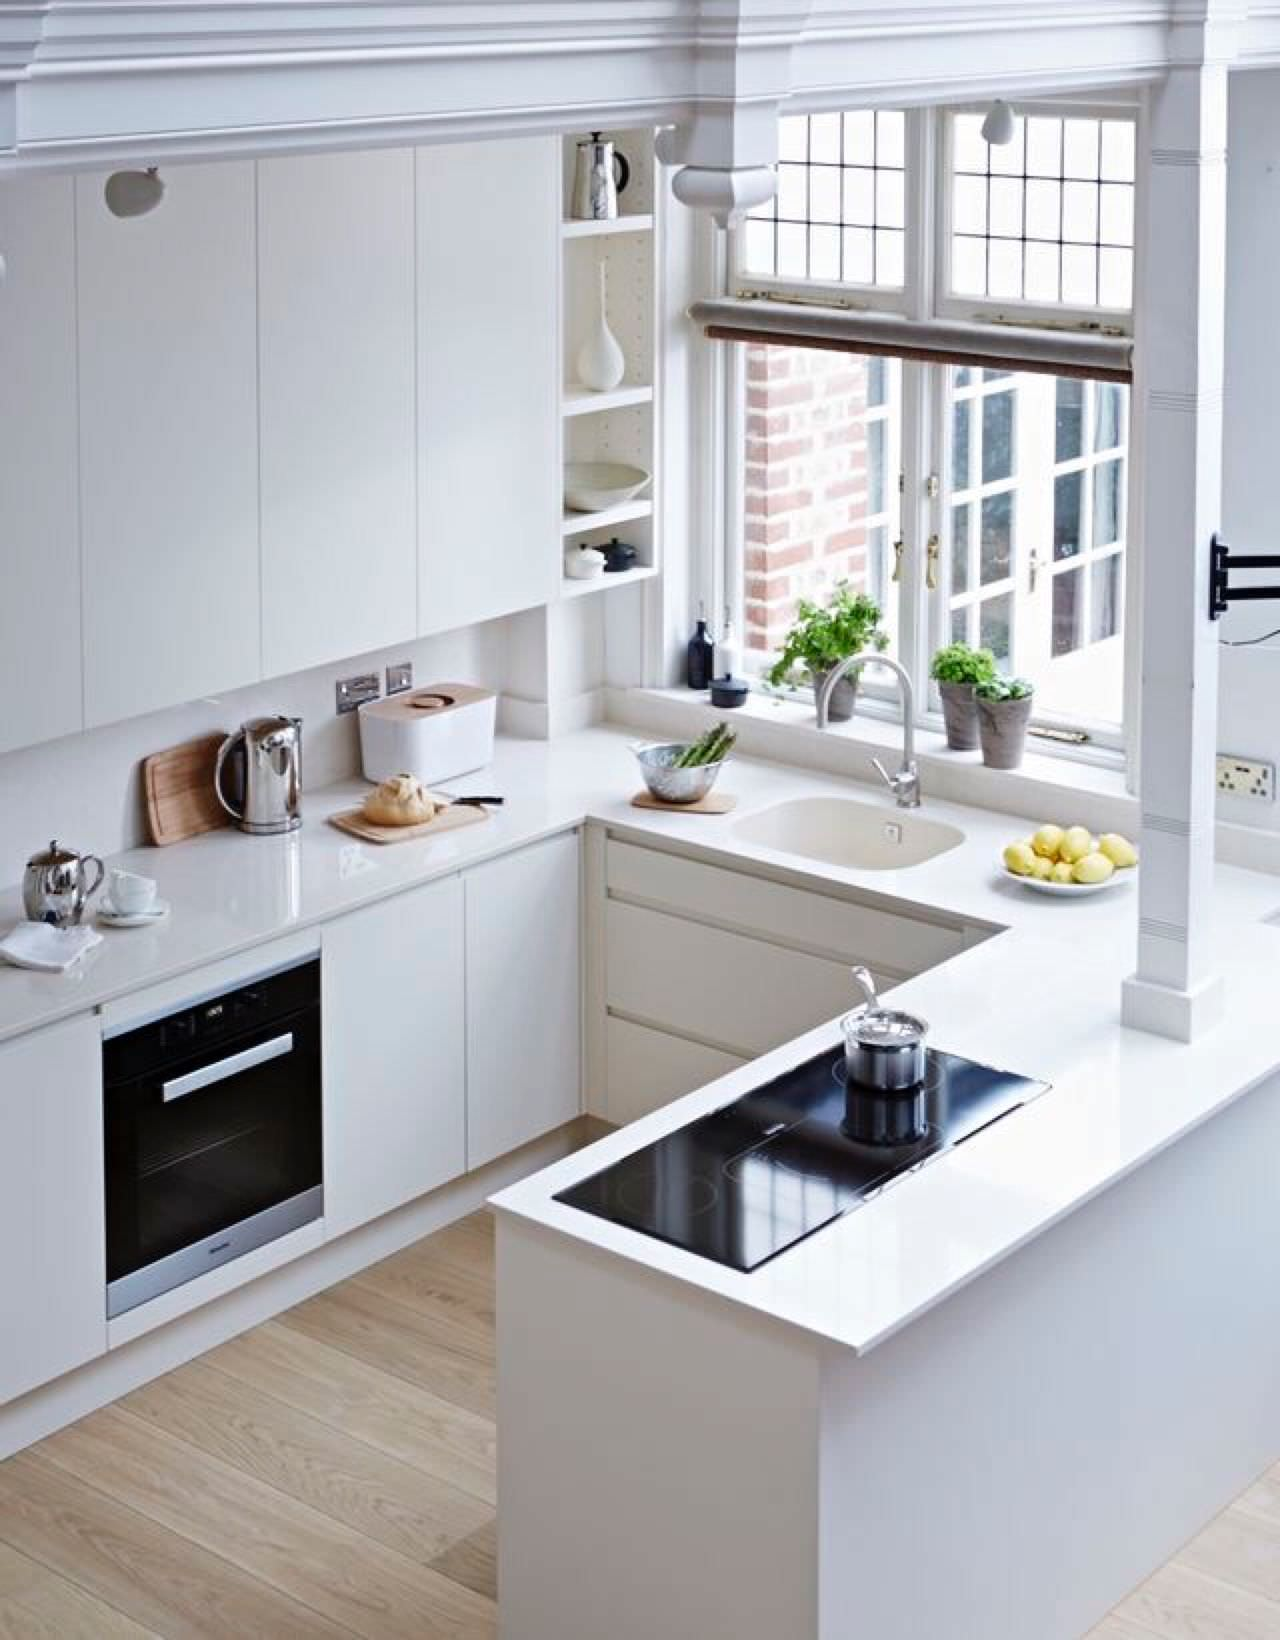 Cucine A U | These Are The Biggest Kitchen Design Trends For 2019 Home